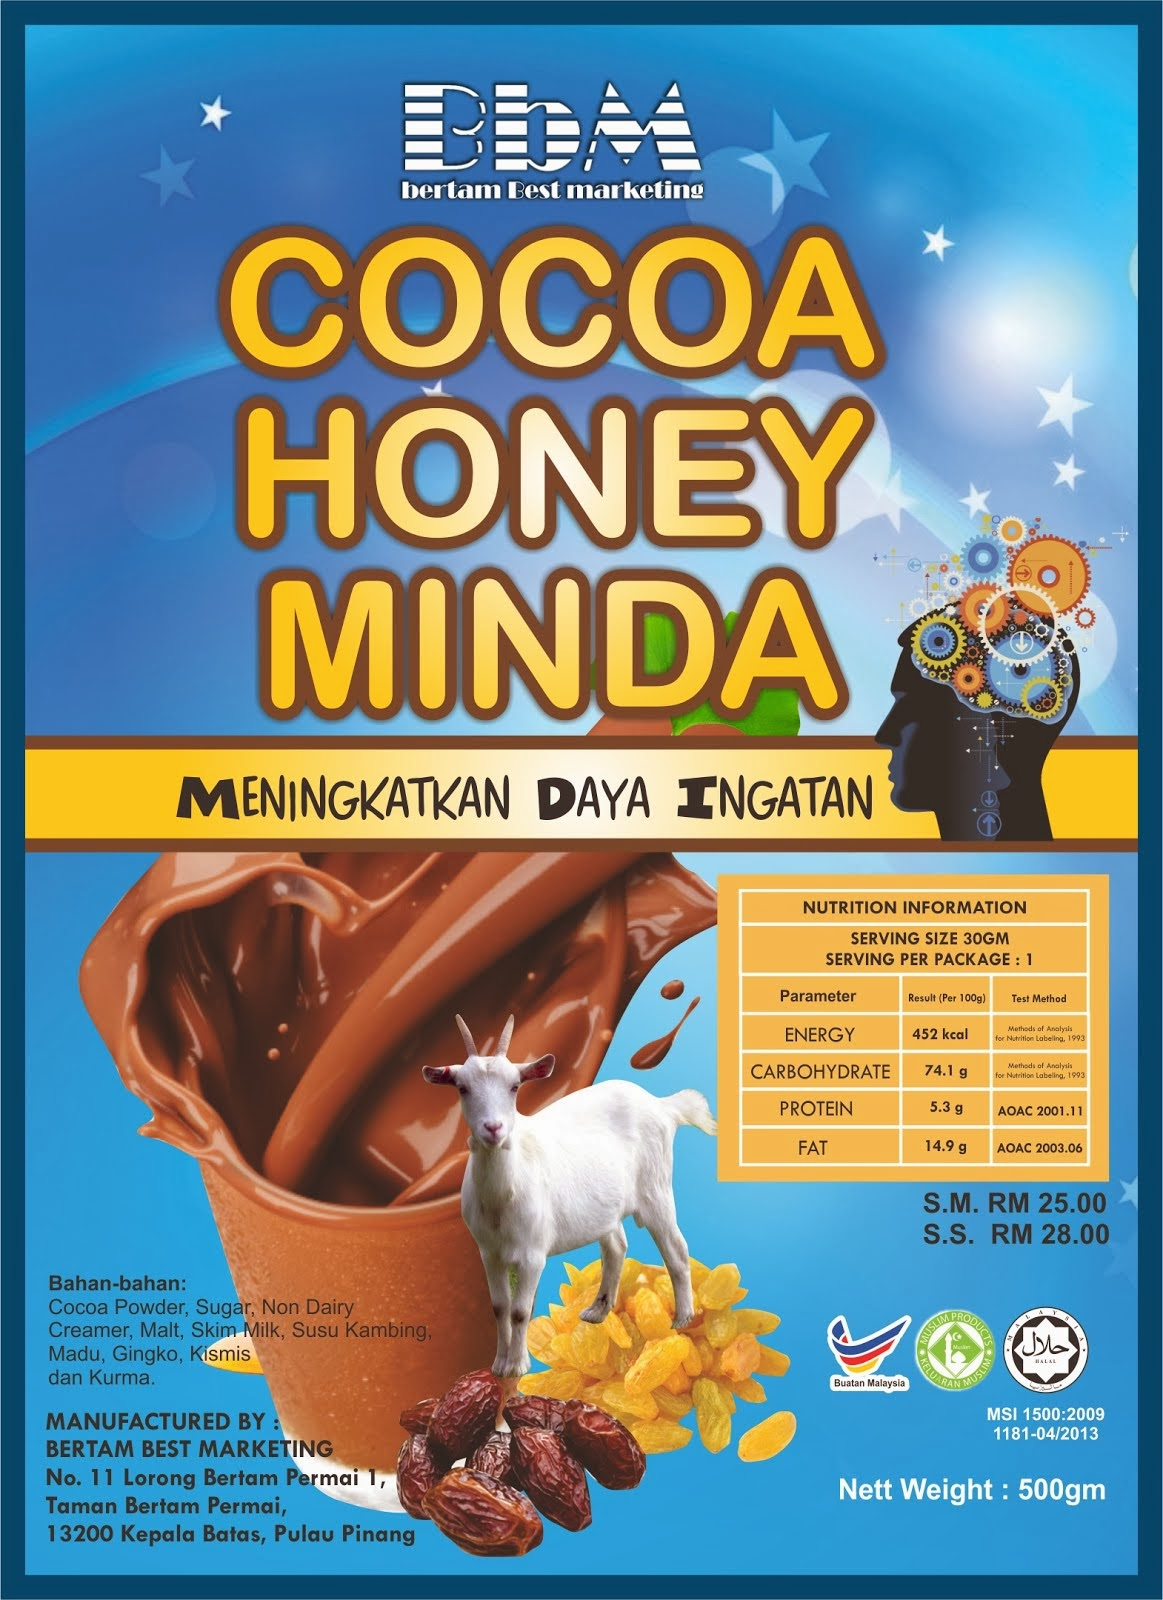 COCOA HONEY MINDA